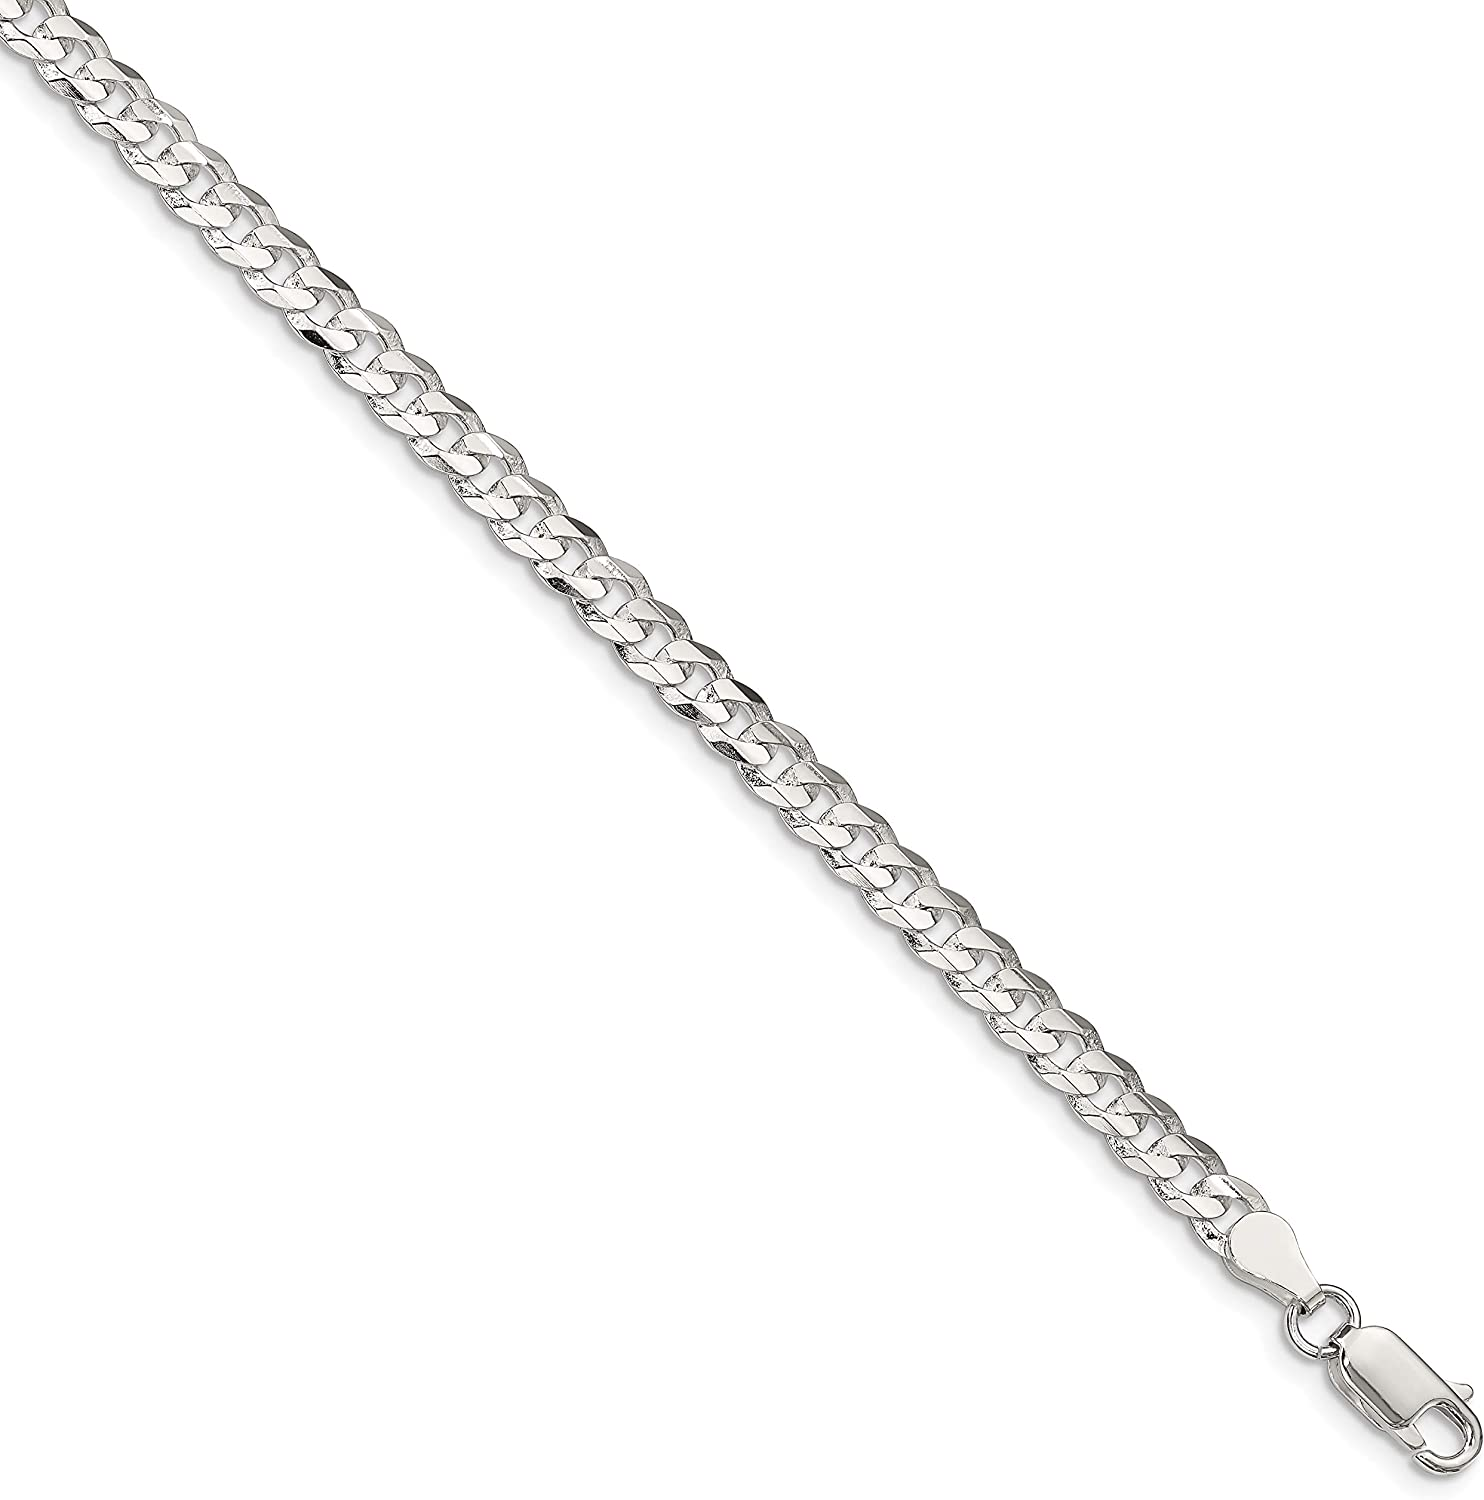 Ryan Jonathan Fine Jewelry Sterling Manufacturer regenerated Max 48% OFF product Silver 4.5mm Concave Beveled